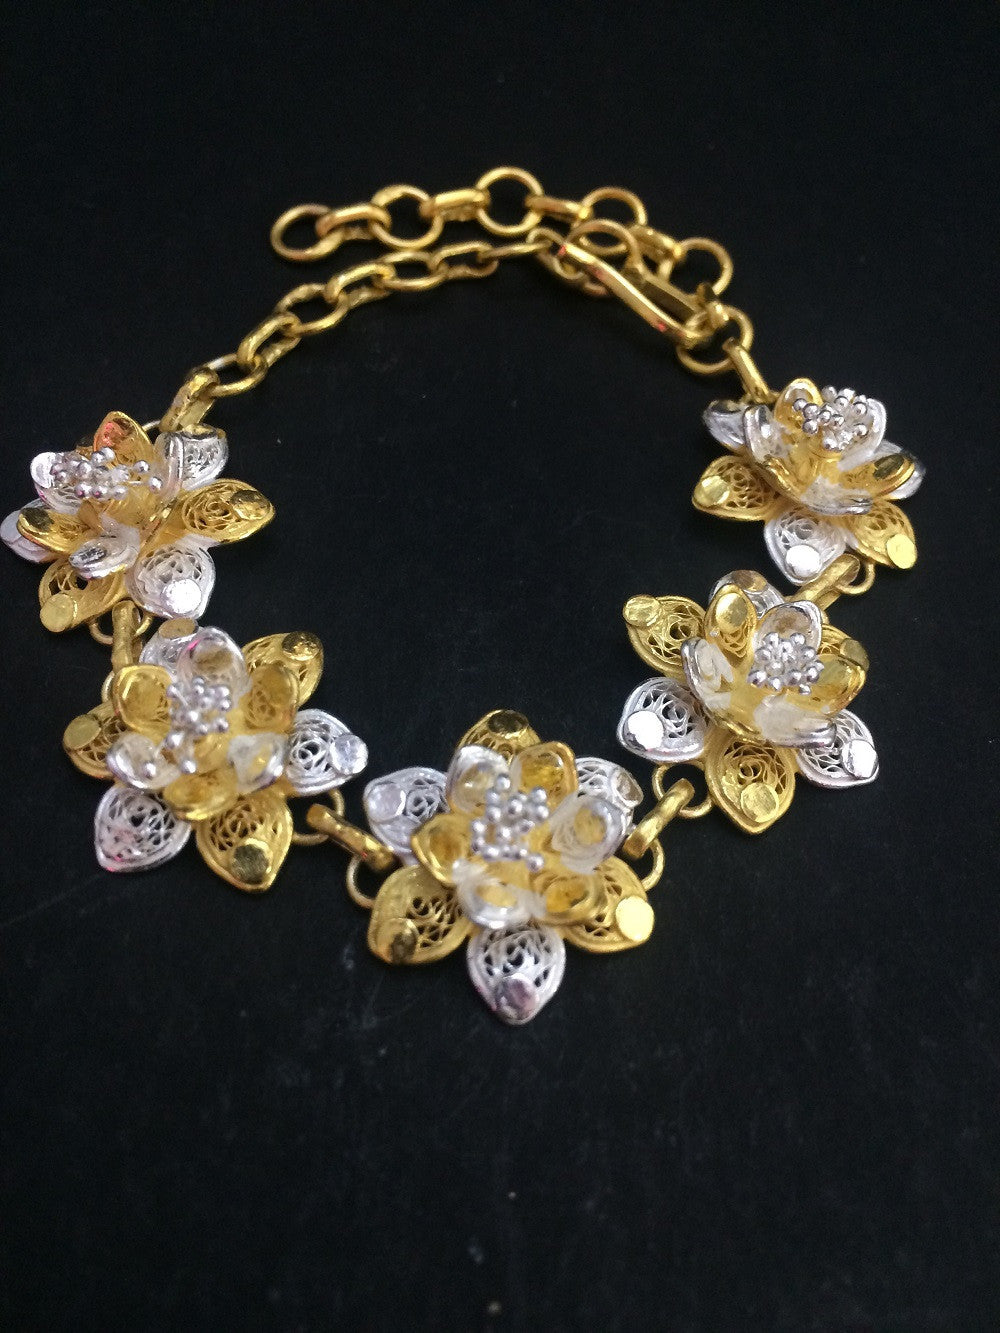 proddetail golden piece s ladies at rs sone ke bracelet kangan gold